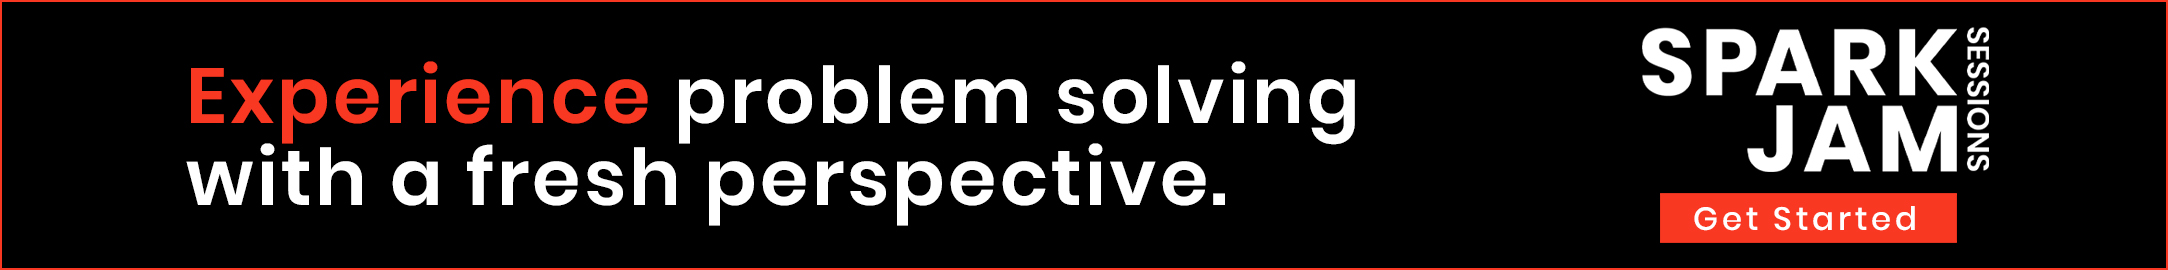 Experience problem solving with a fresh perspective.